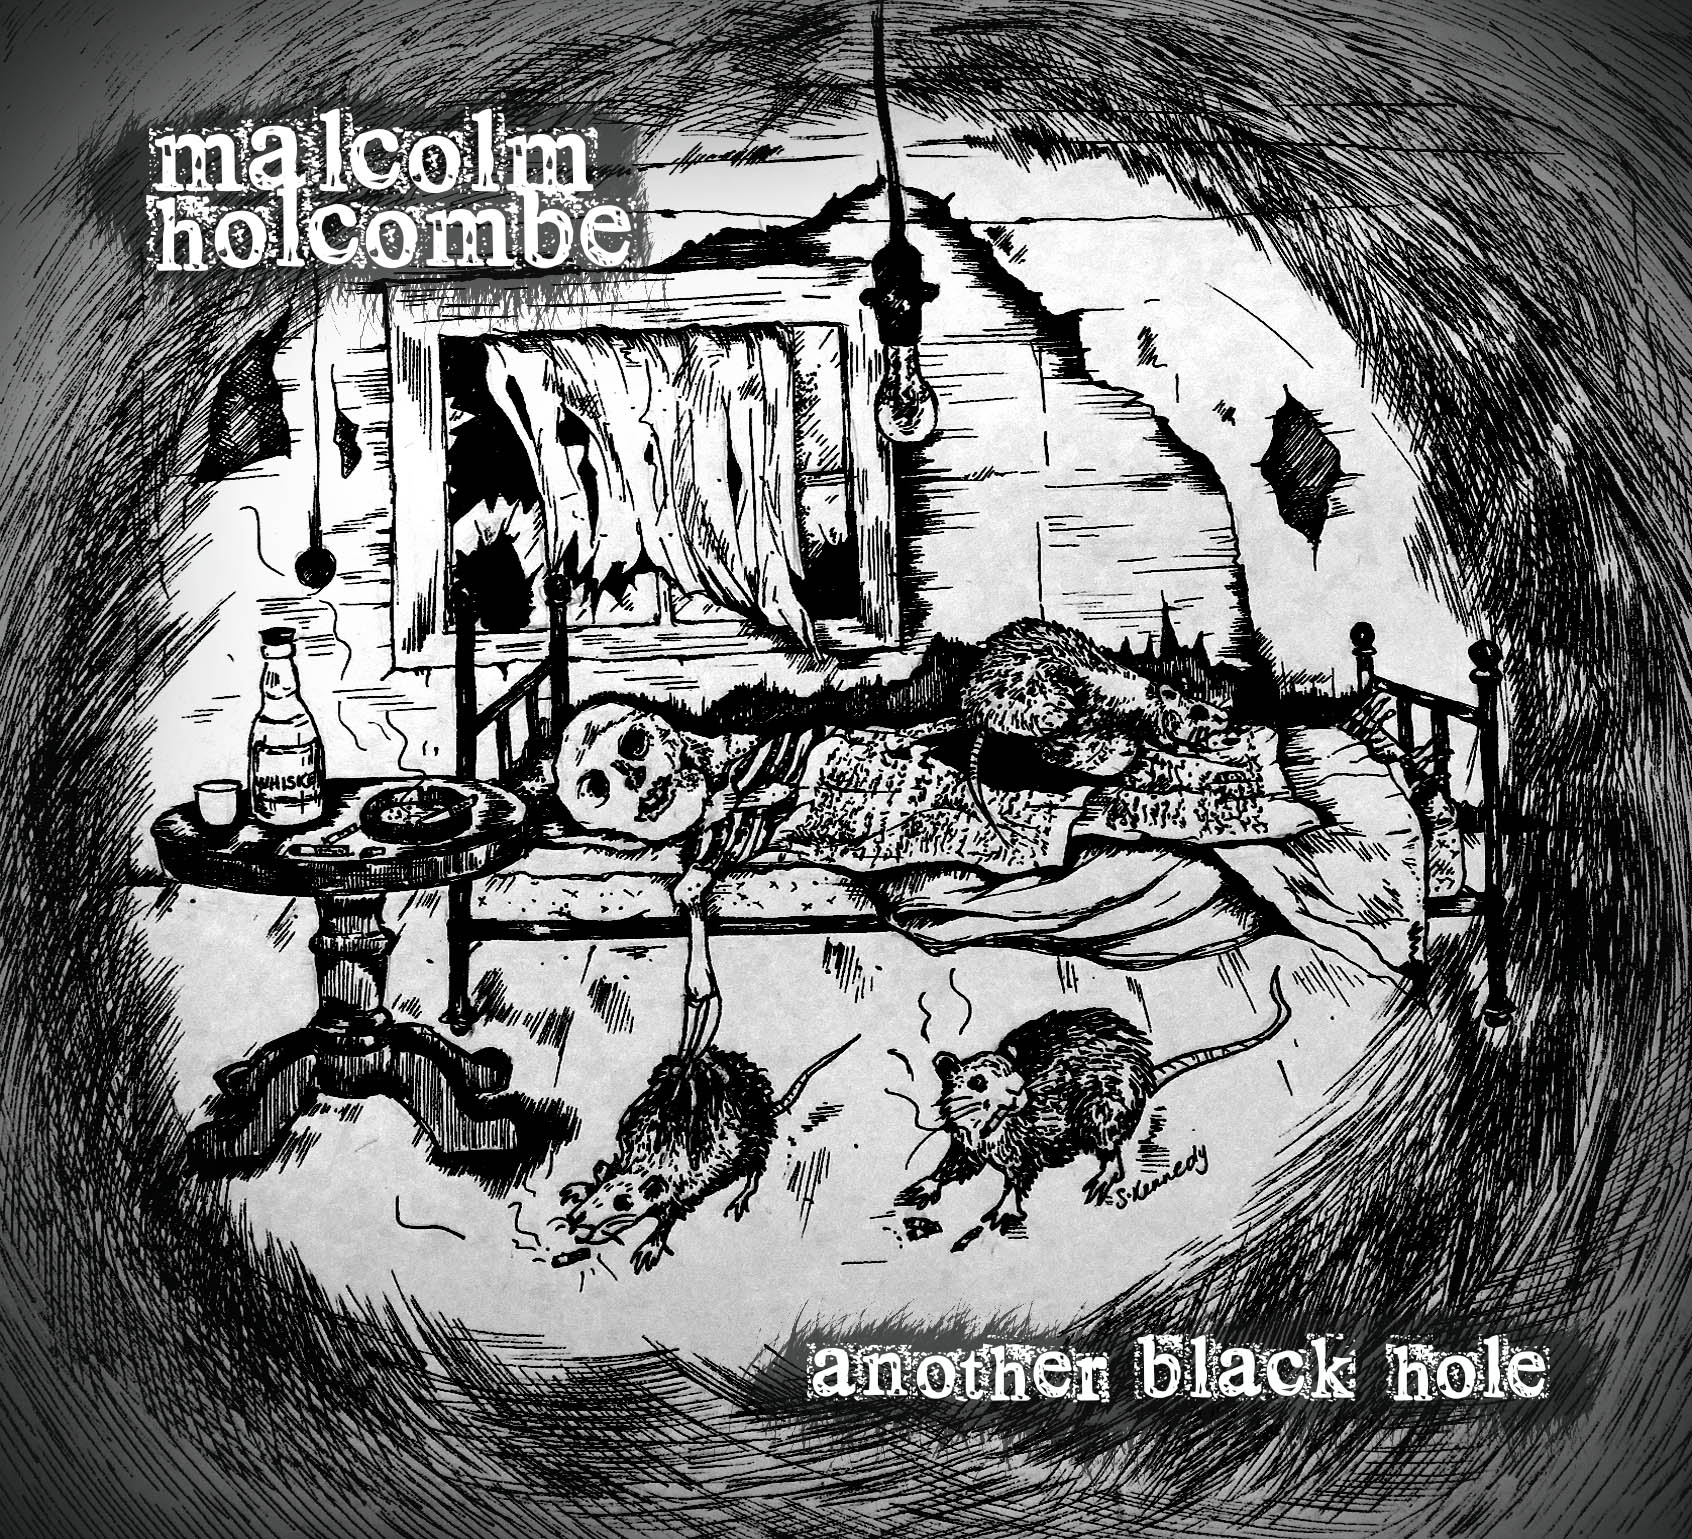 another black hole cover-2015.jpg